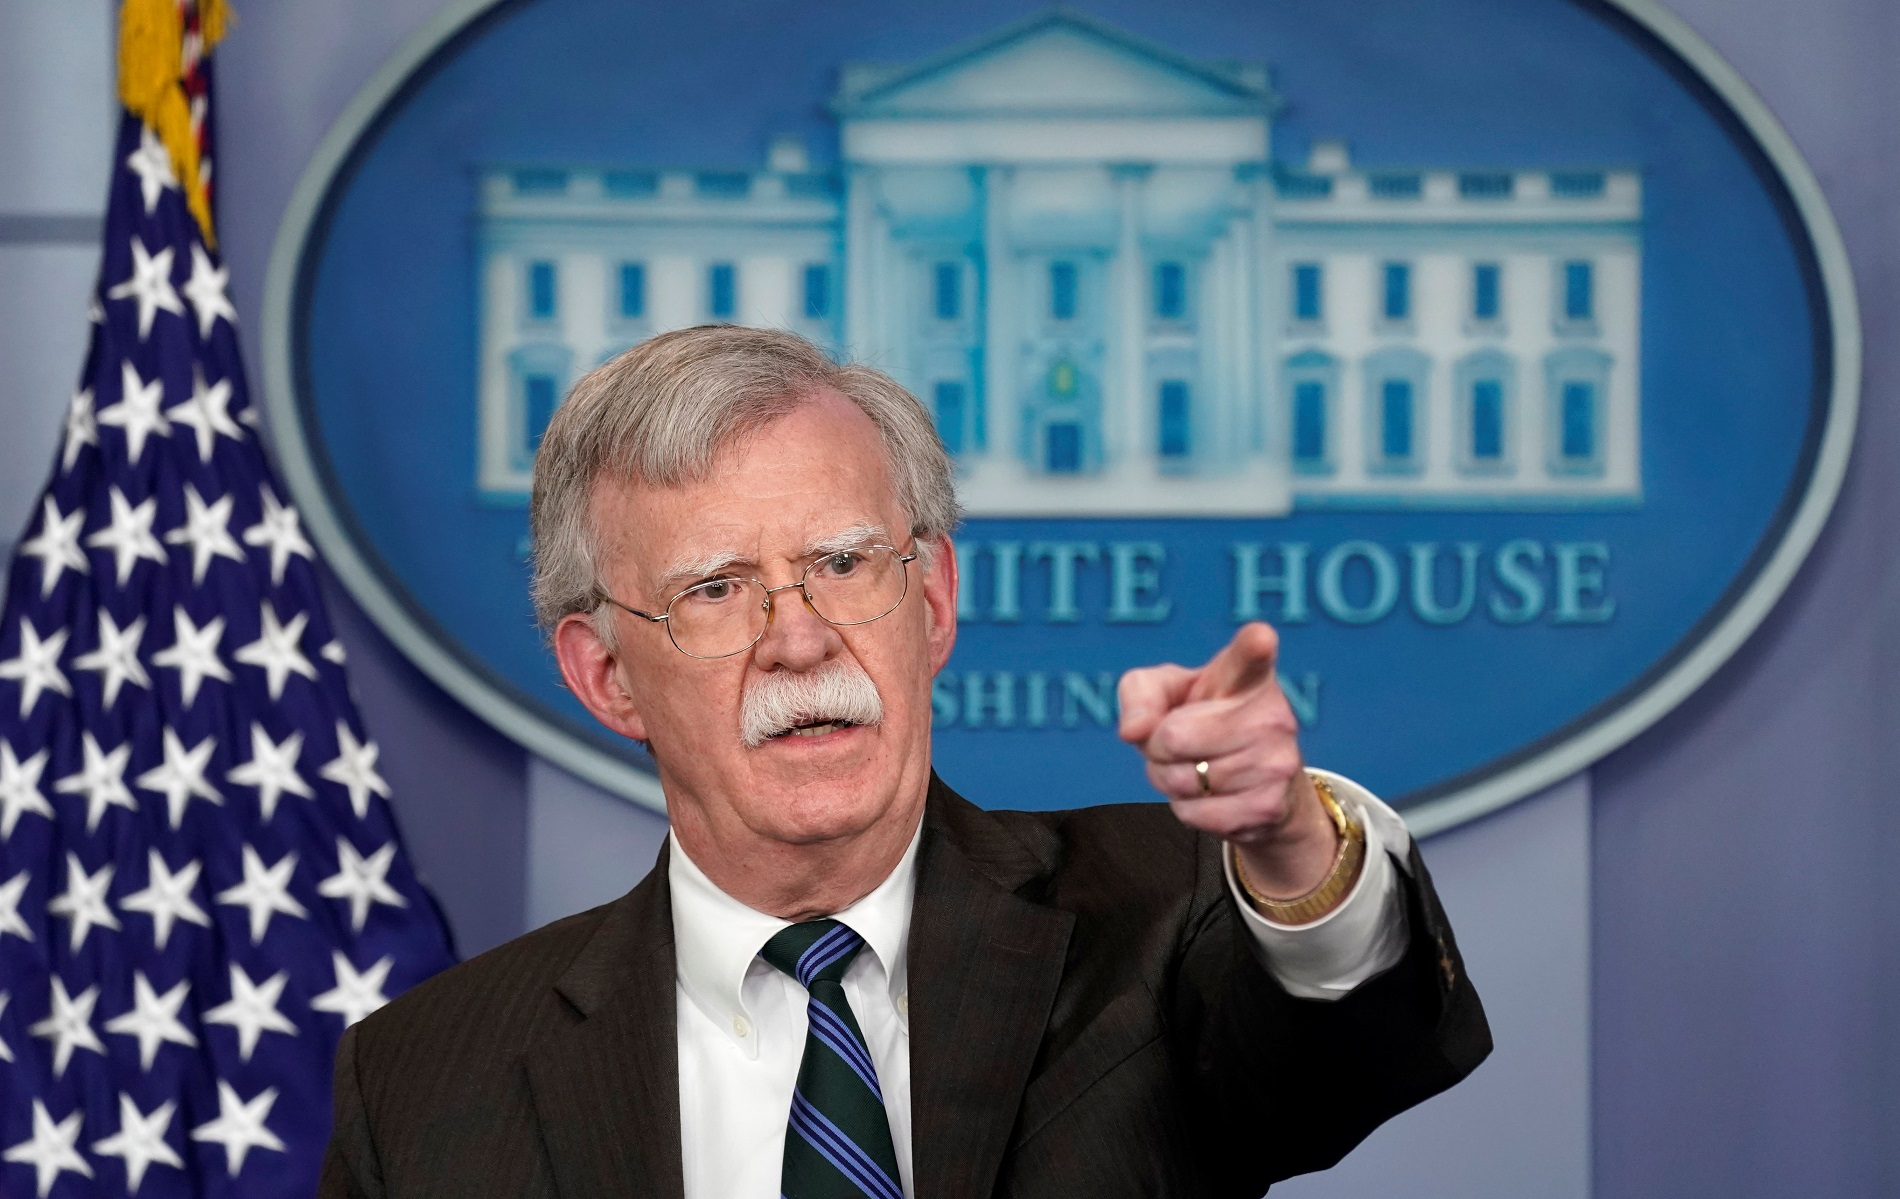 This Is The Big Moment for John Bolton